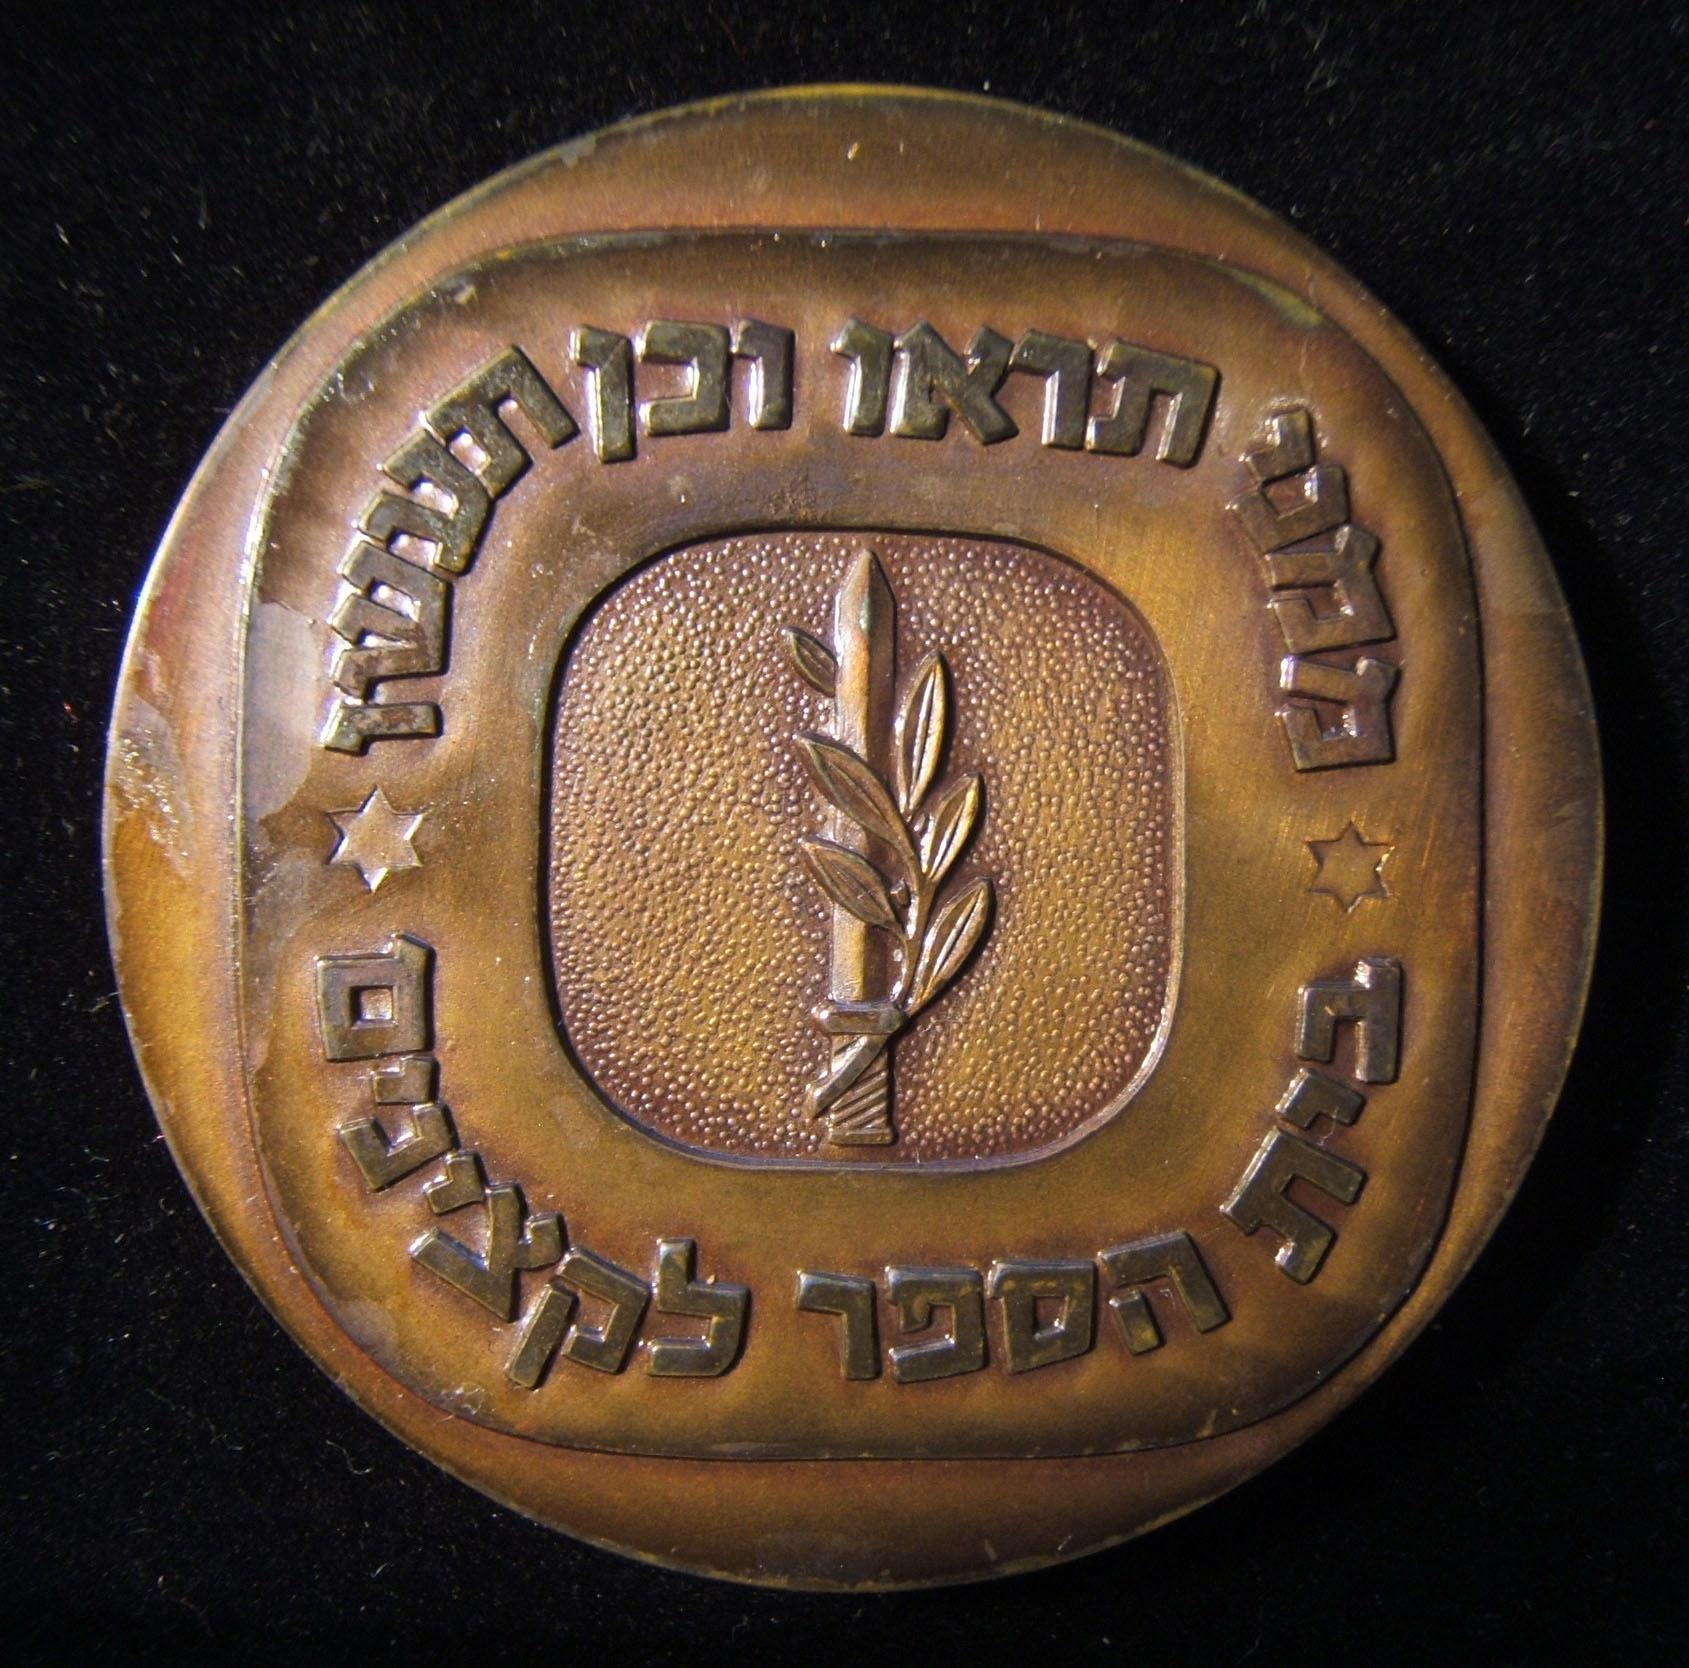 Israeli Army/IDF Officers Training School medal 1967-68